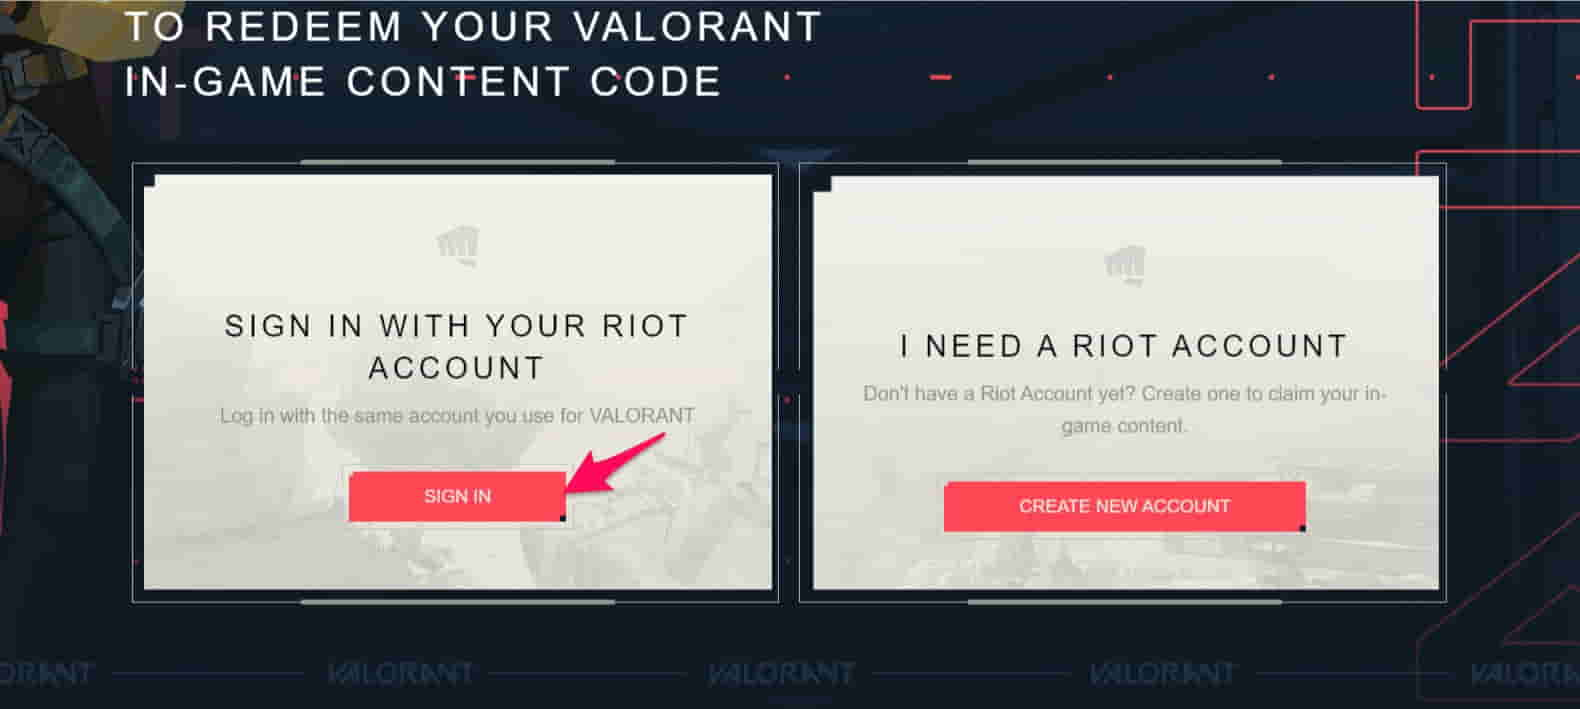 What Is Valorant Duality PlayerCard, How to Get the Valorant Duality PlayerCard, How to Redeem Codes in Valorant, Valorant Duality PlayerCard, Duality PlayerCard